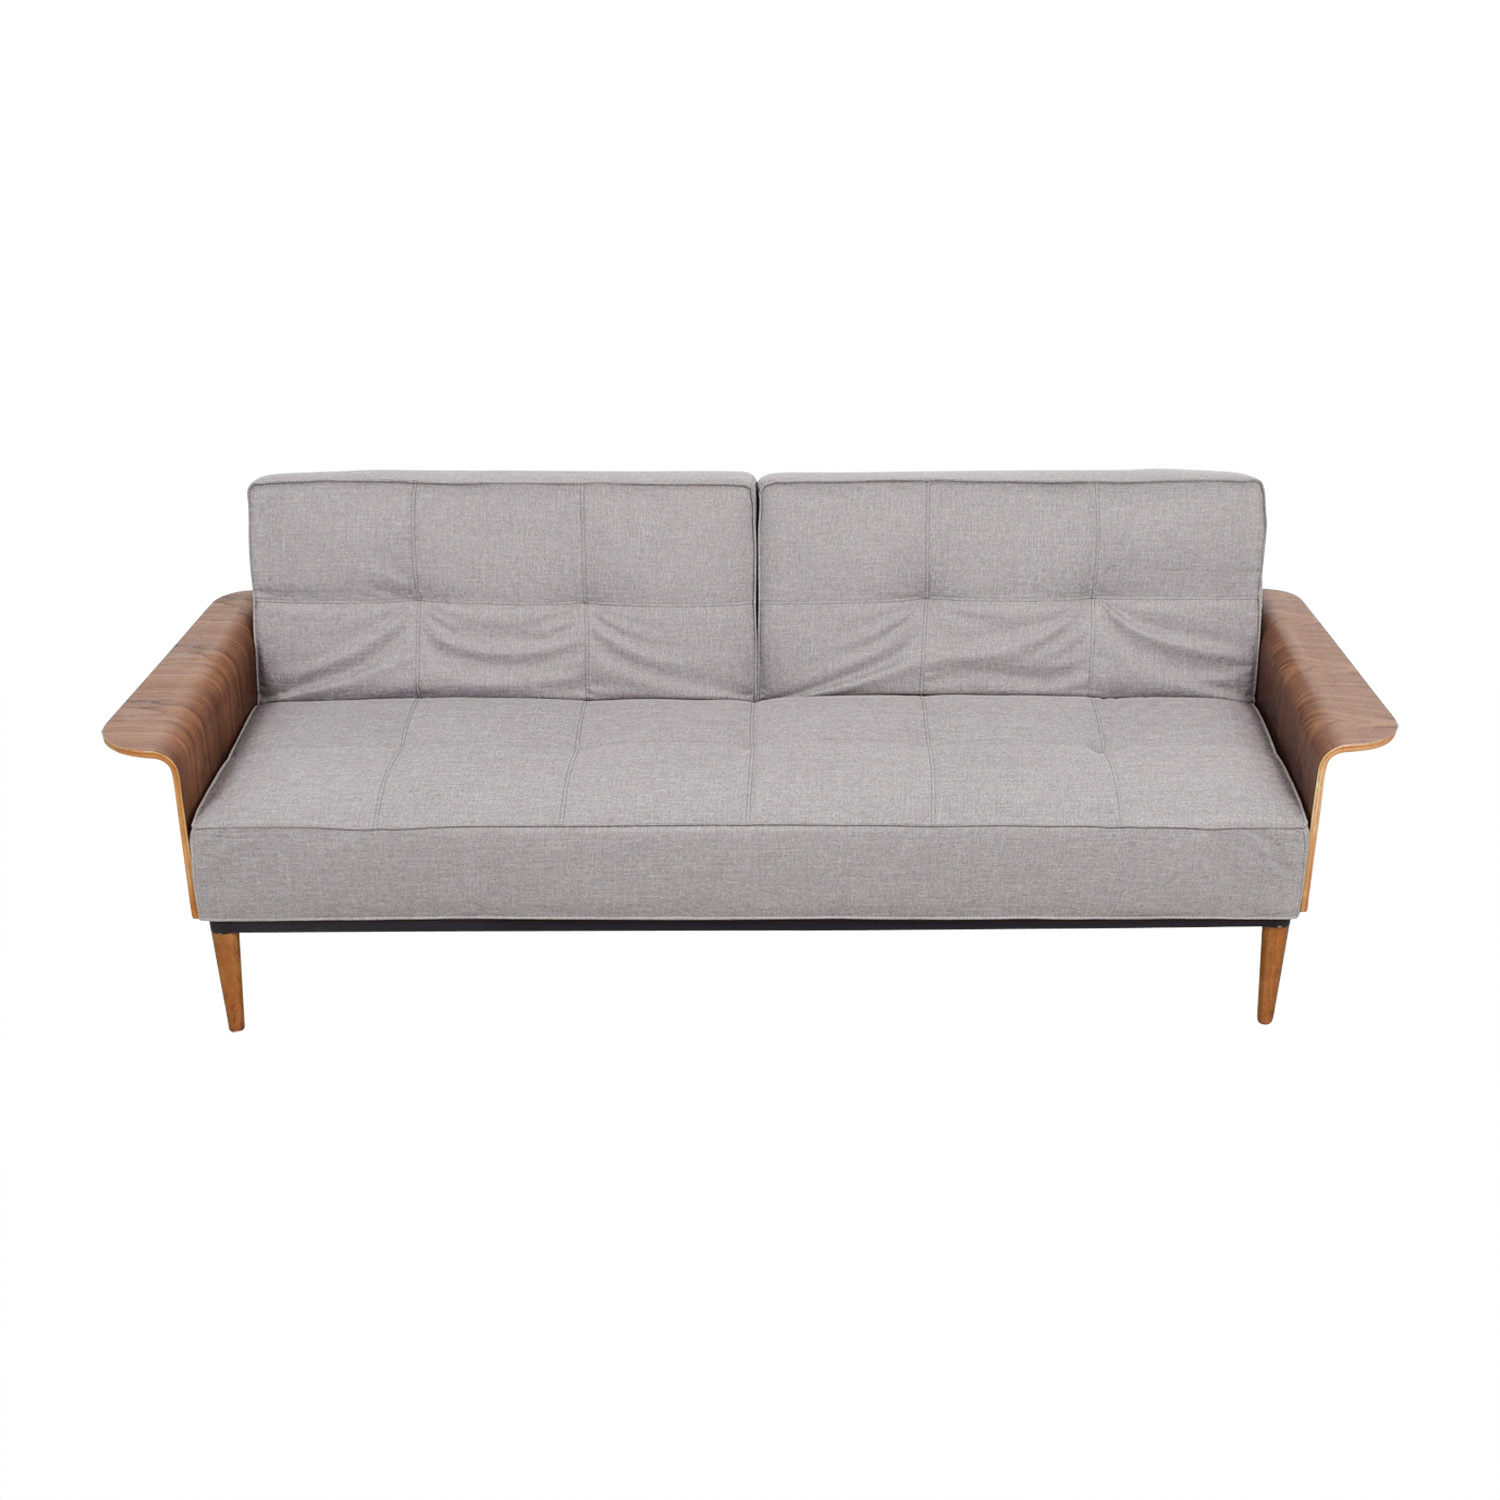 buy Inmod Bjorg Tufted Light Grey Sofabed Inmod Classic Sofas